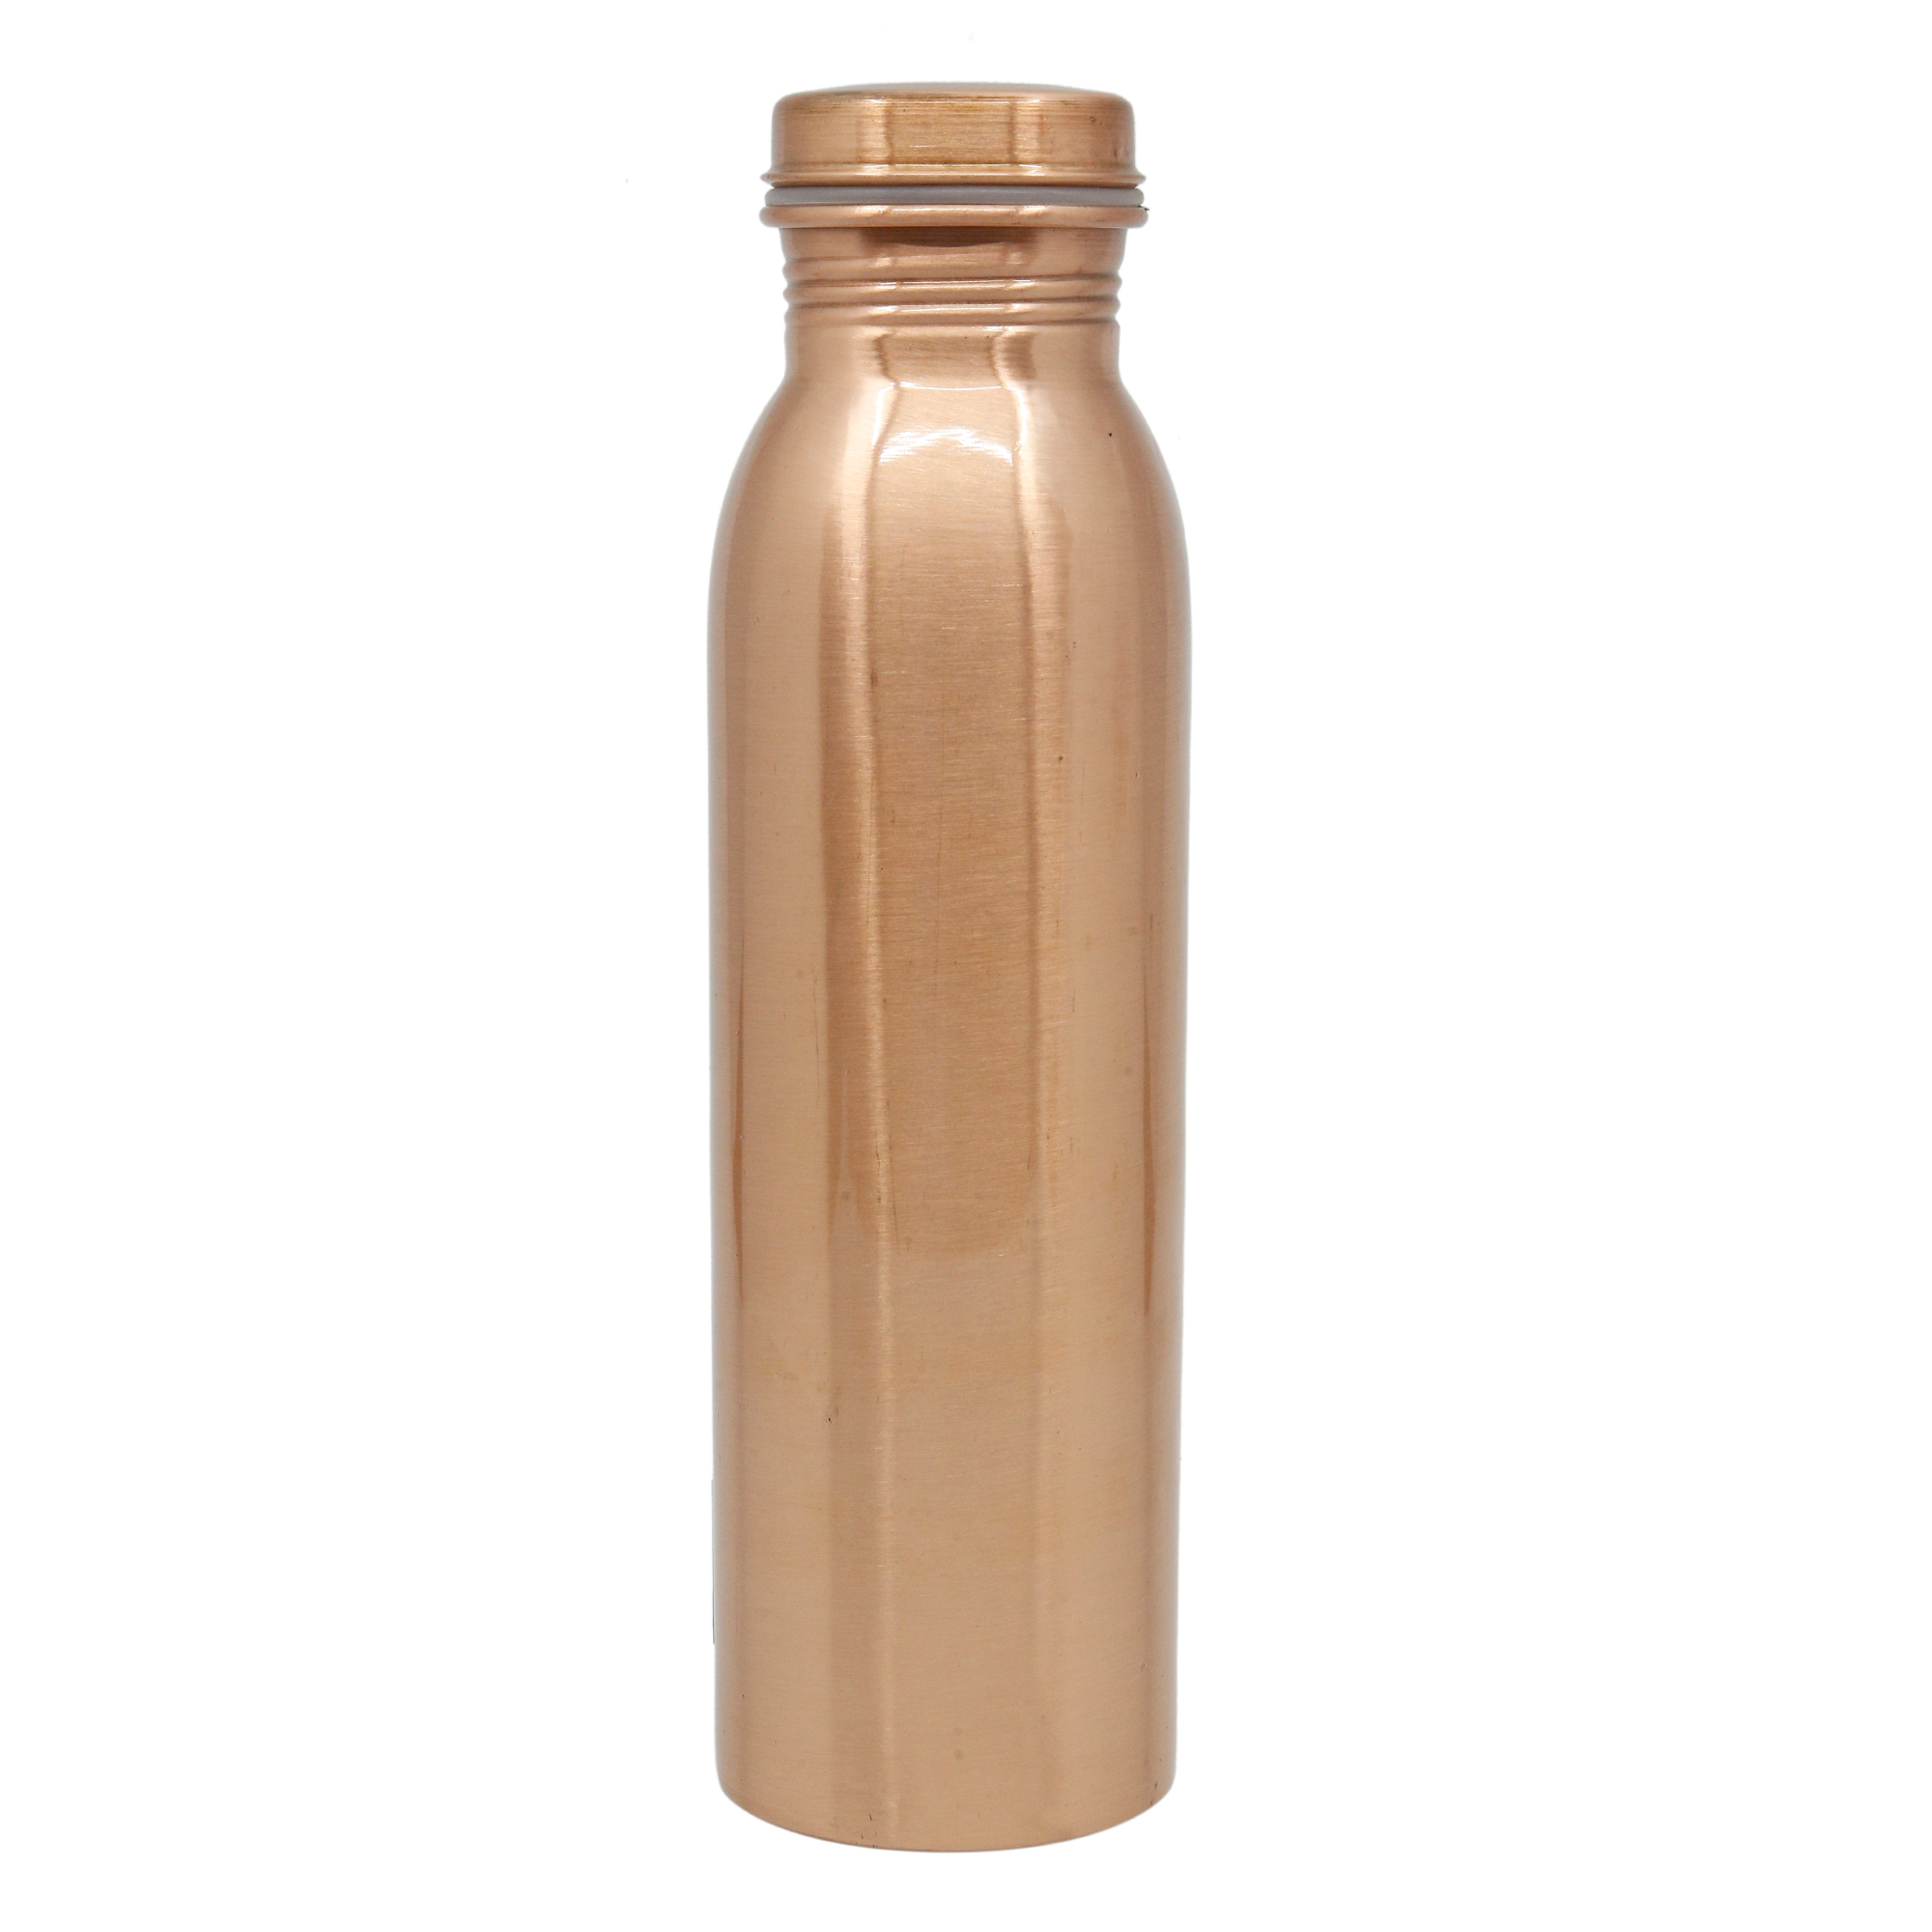 Battlane Pure and Clean High Grade Copper Water Bottle 1000 ml, Leak Proof Copper Water Bottle 1 Litre (Pack of 1)